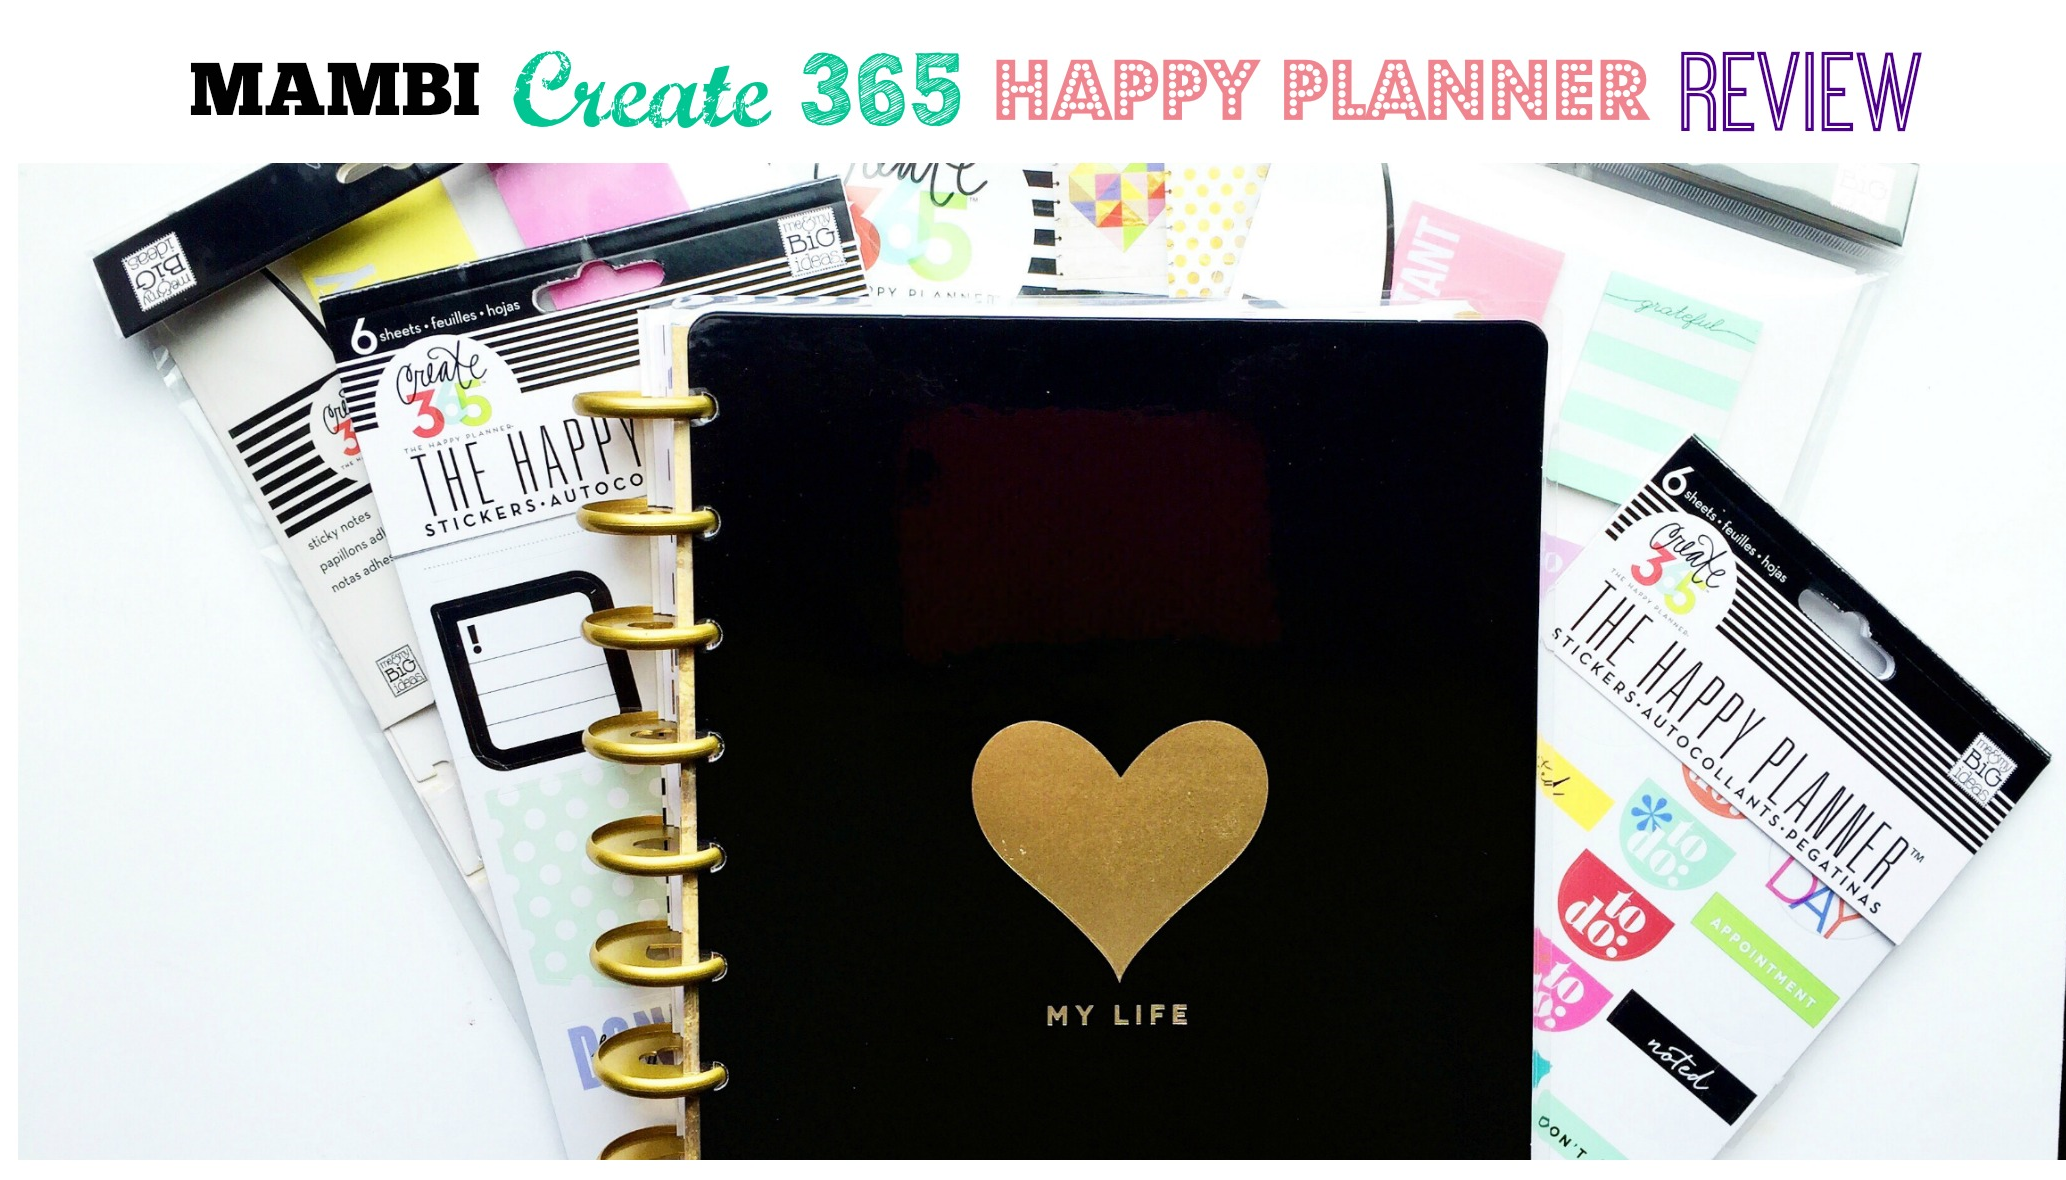 MAMBI Create 365 Happy Planner Review